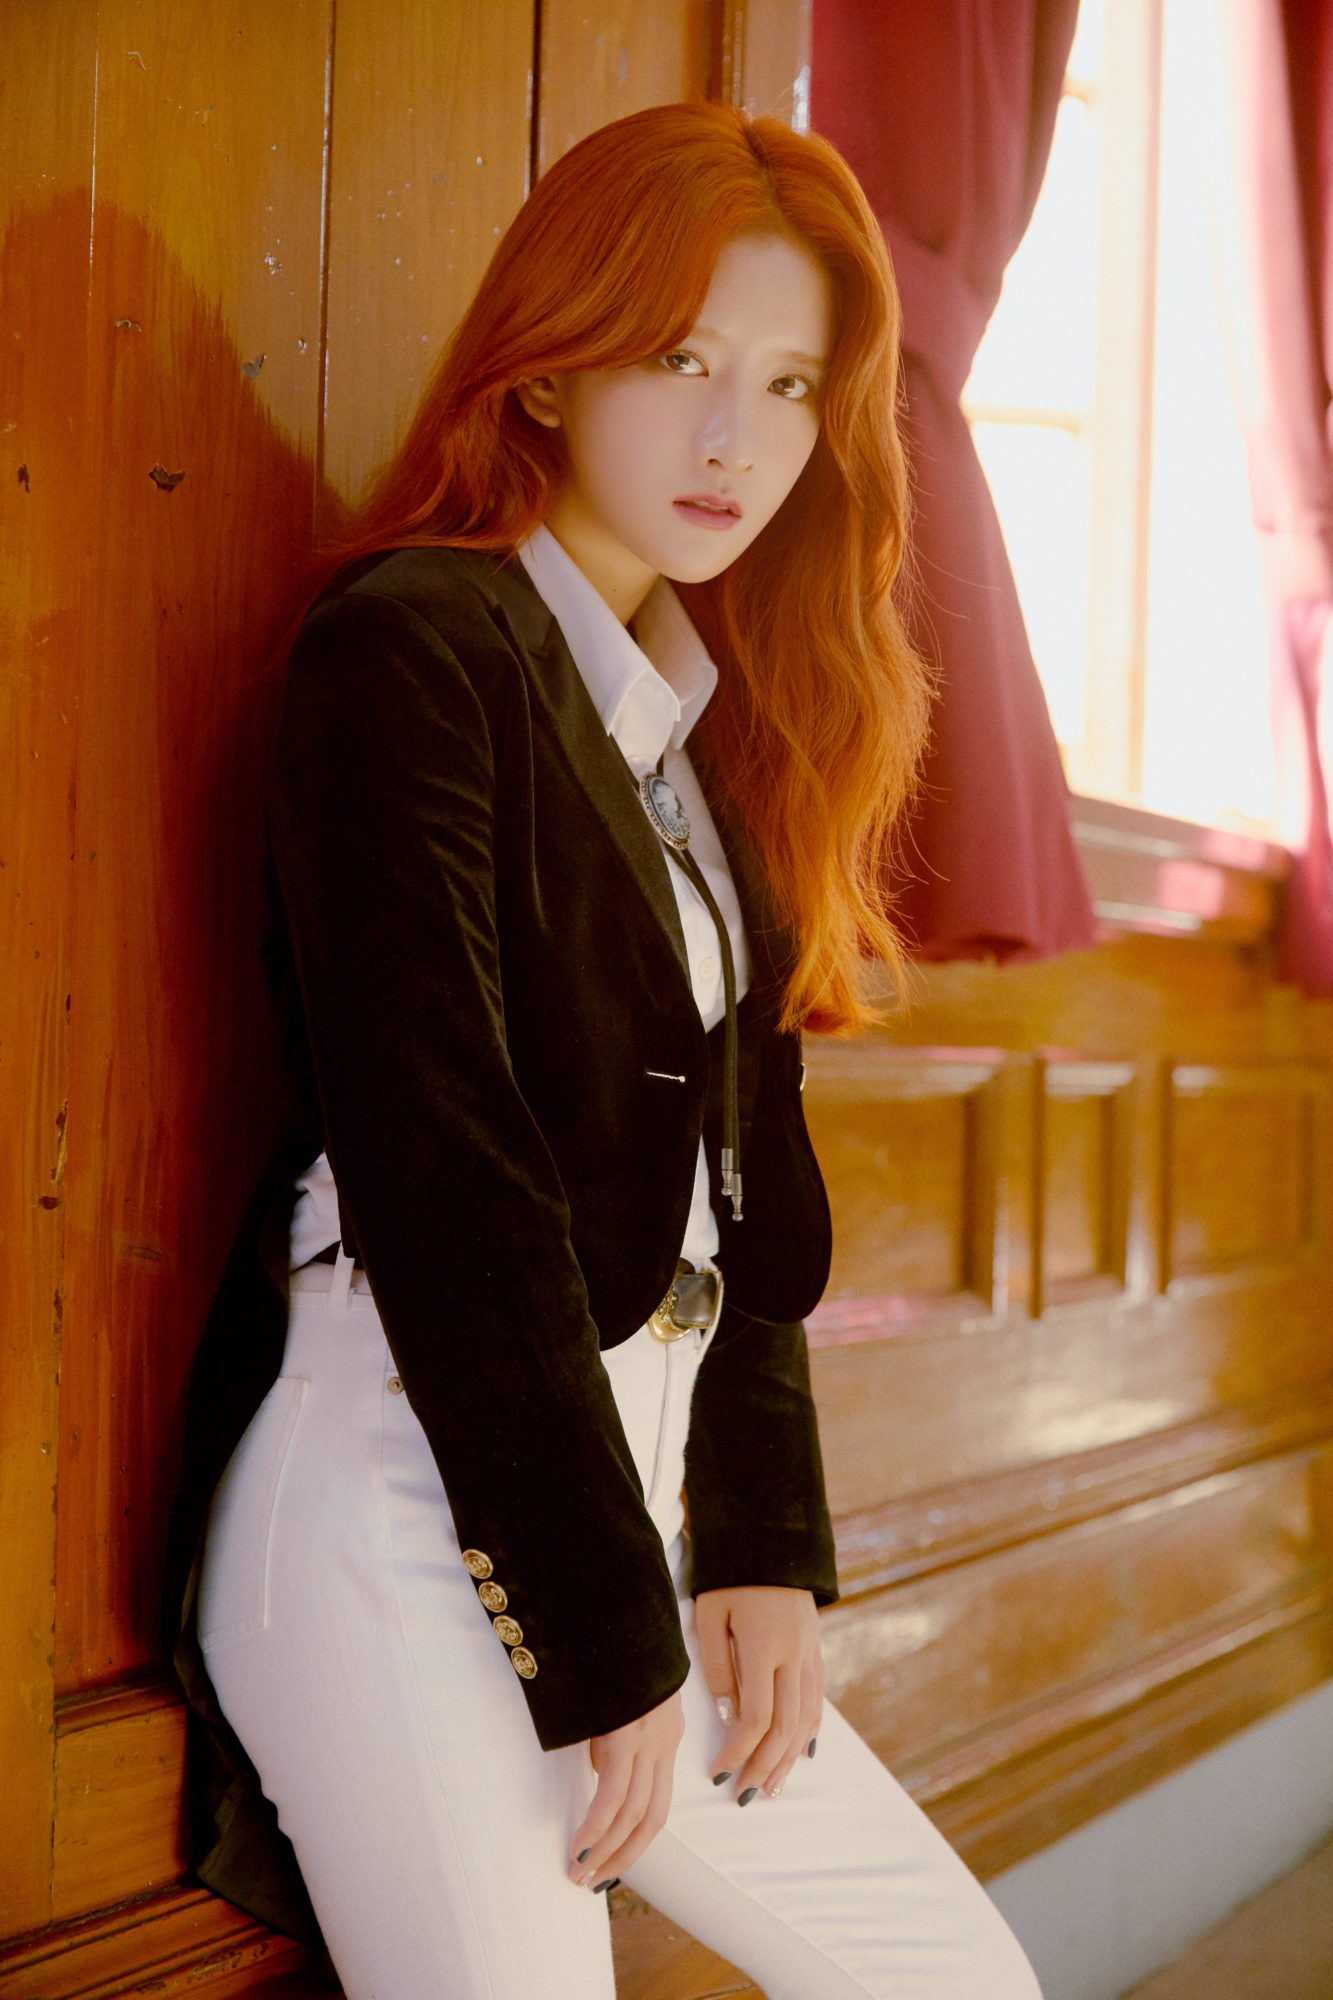 WJSN EXY As You Wish Concept